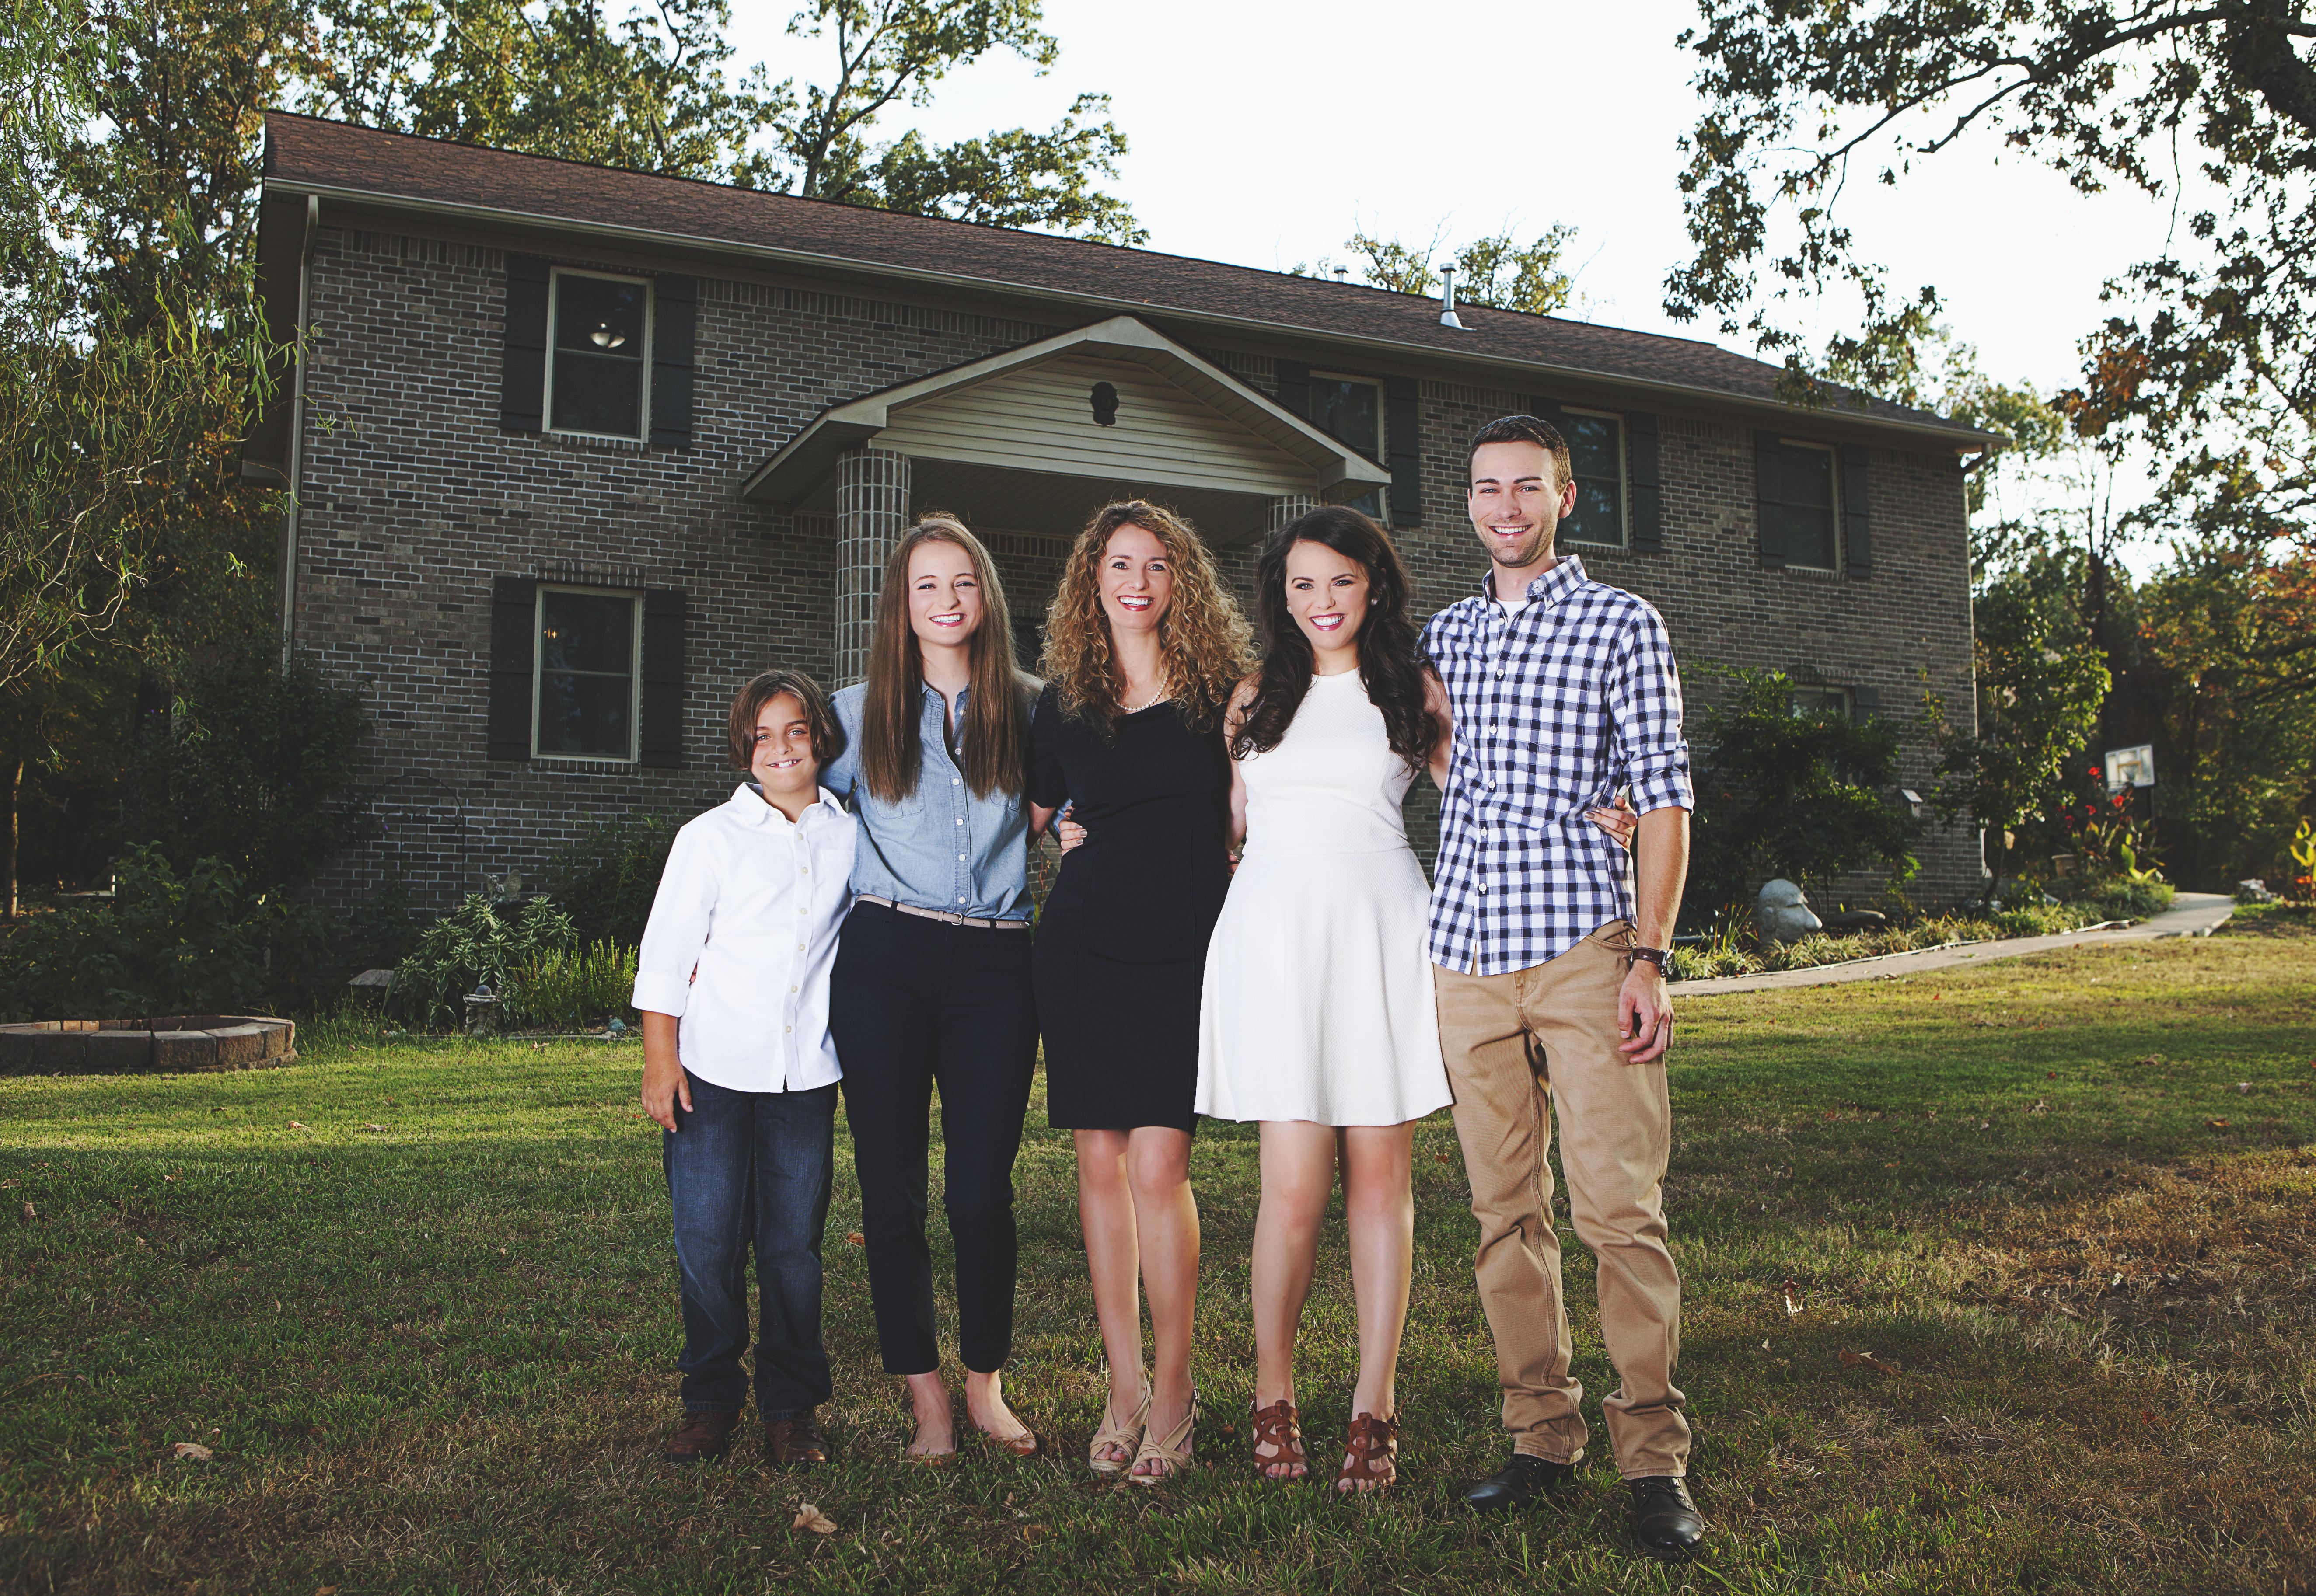 Mother of four builds home from scratch after watching